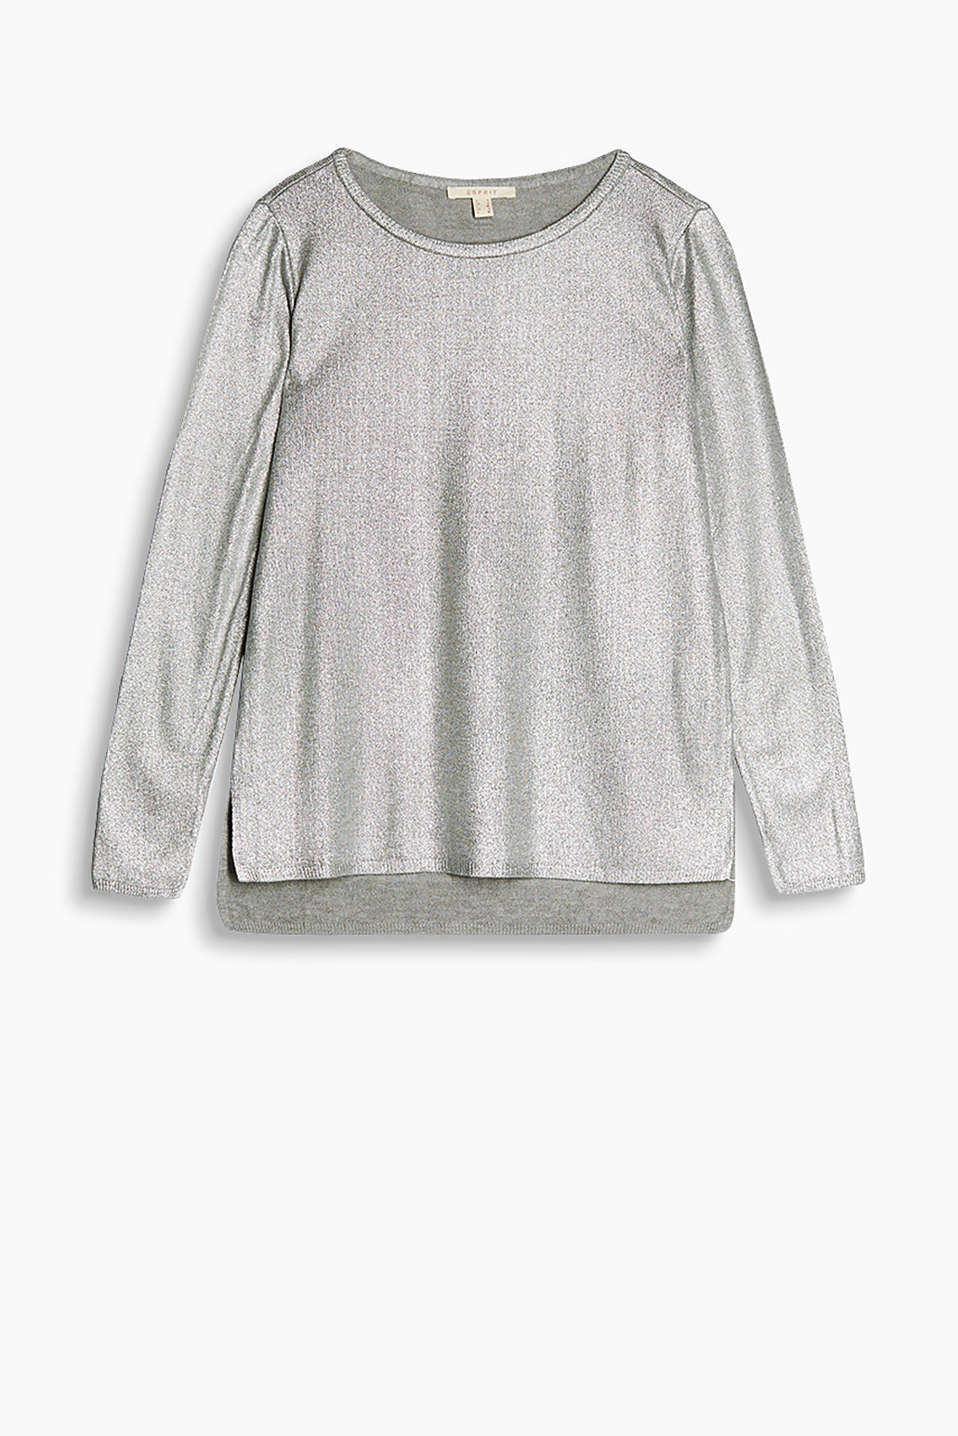 Coated jumper with a fine sheen and a high-low hem